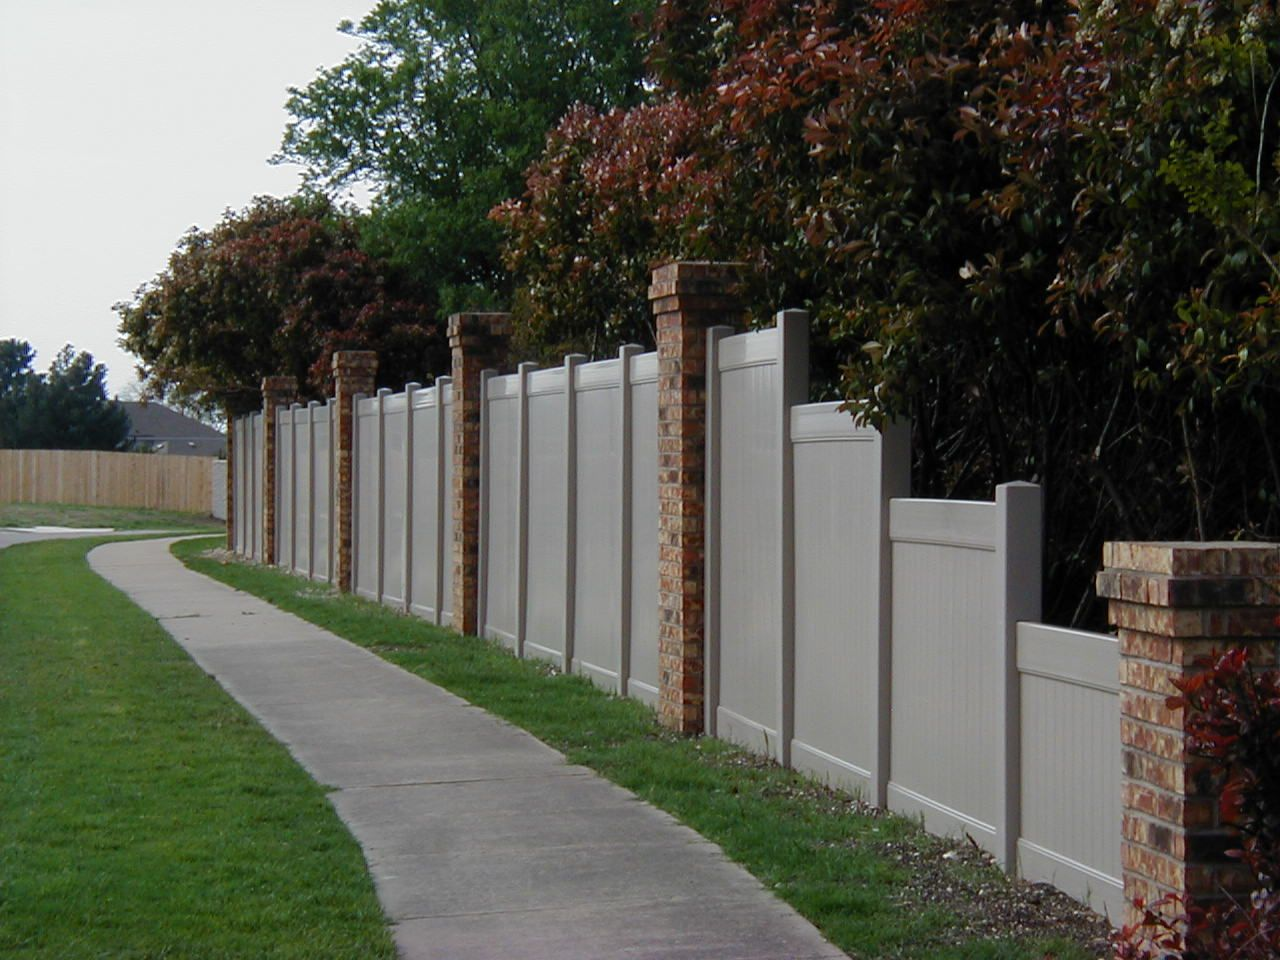 Vinyl privacy fence love the brick columns outdoor ideas vinyl fences can be custom installed when you call future outdoors we are the expert in vinyl fencing installing quality material with professional baanklon Gallery